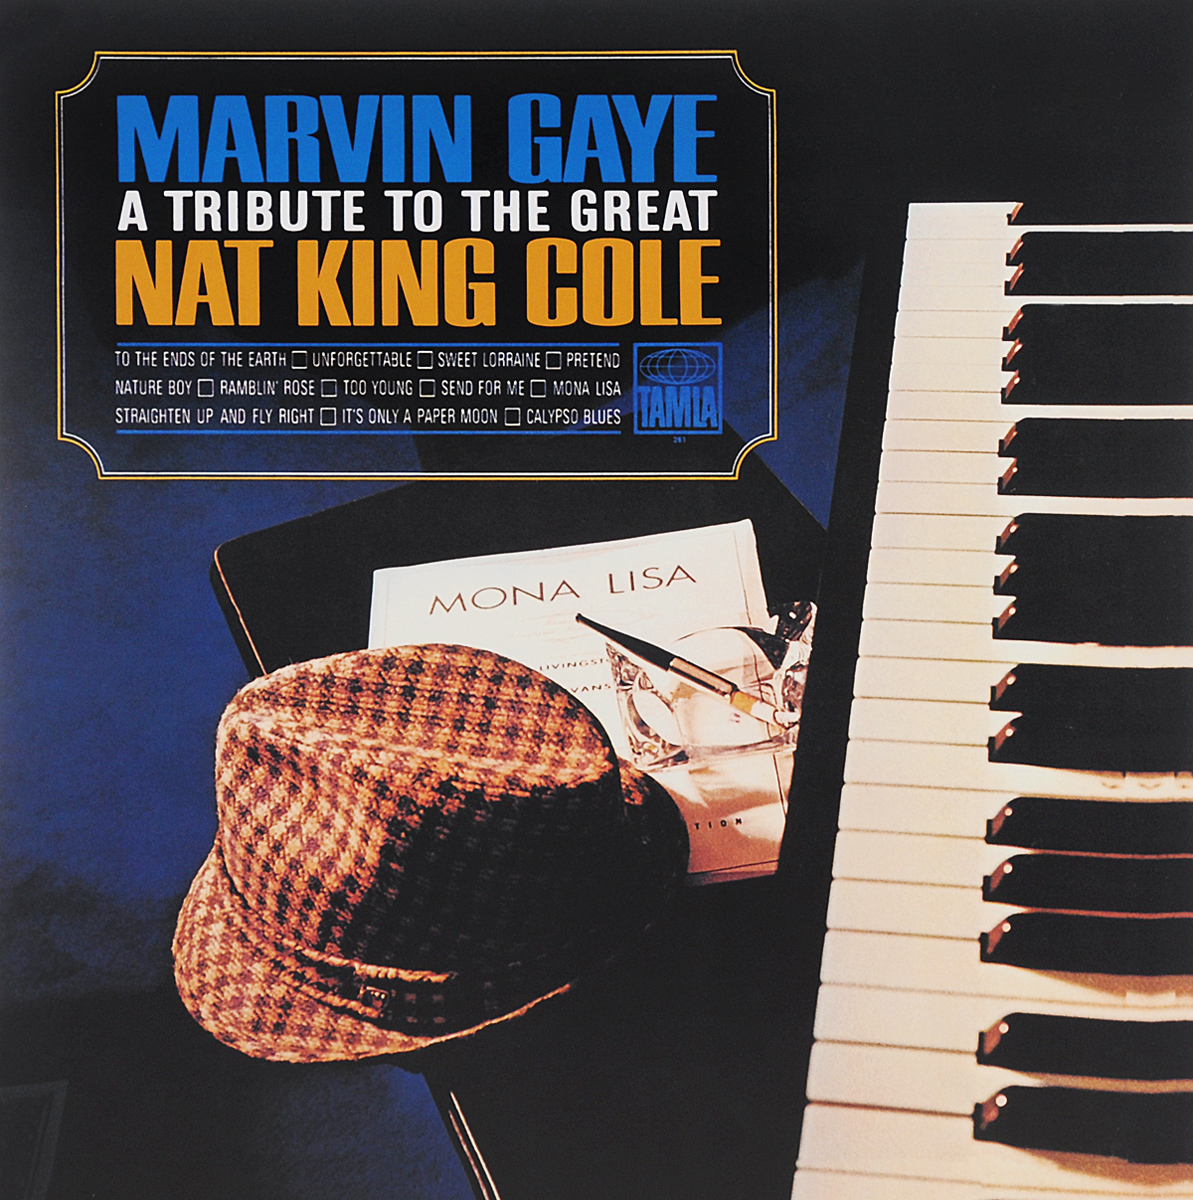 Марвин Гэй Marvin Gaye. A Tribute To The Great Nat King Cole (LP) nat king cole nat king cole the platinum collection 3 lp